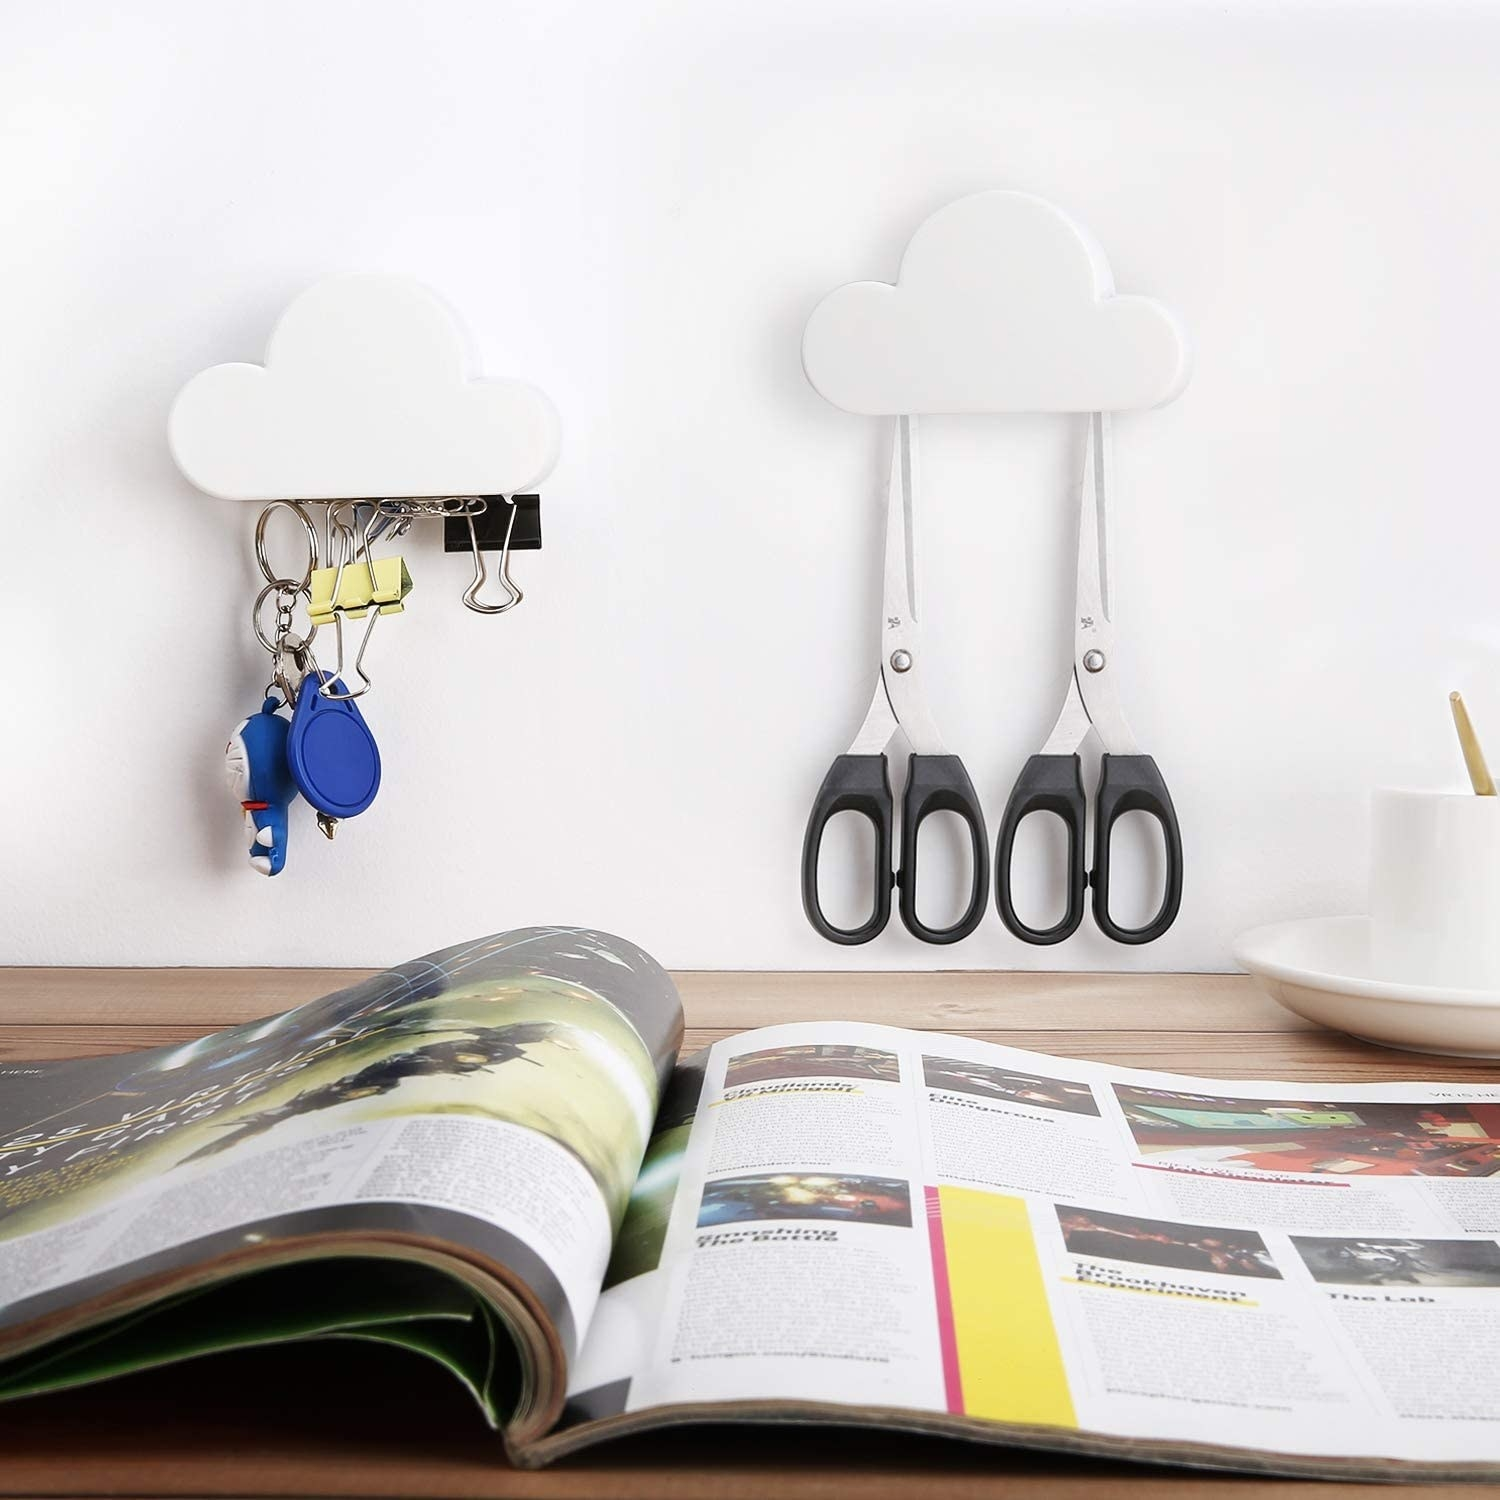 Two clouds holding paperclips and scissors